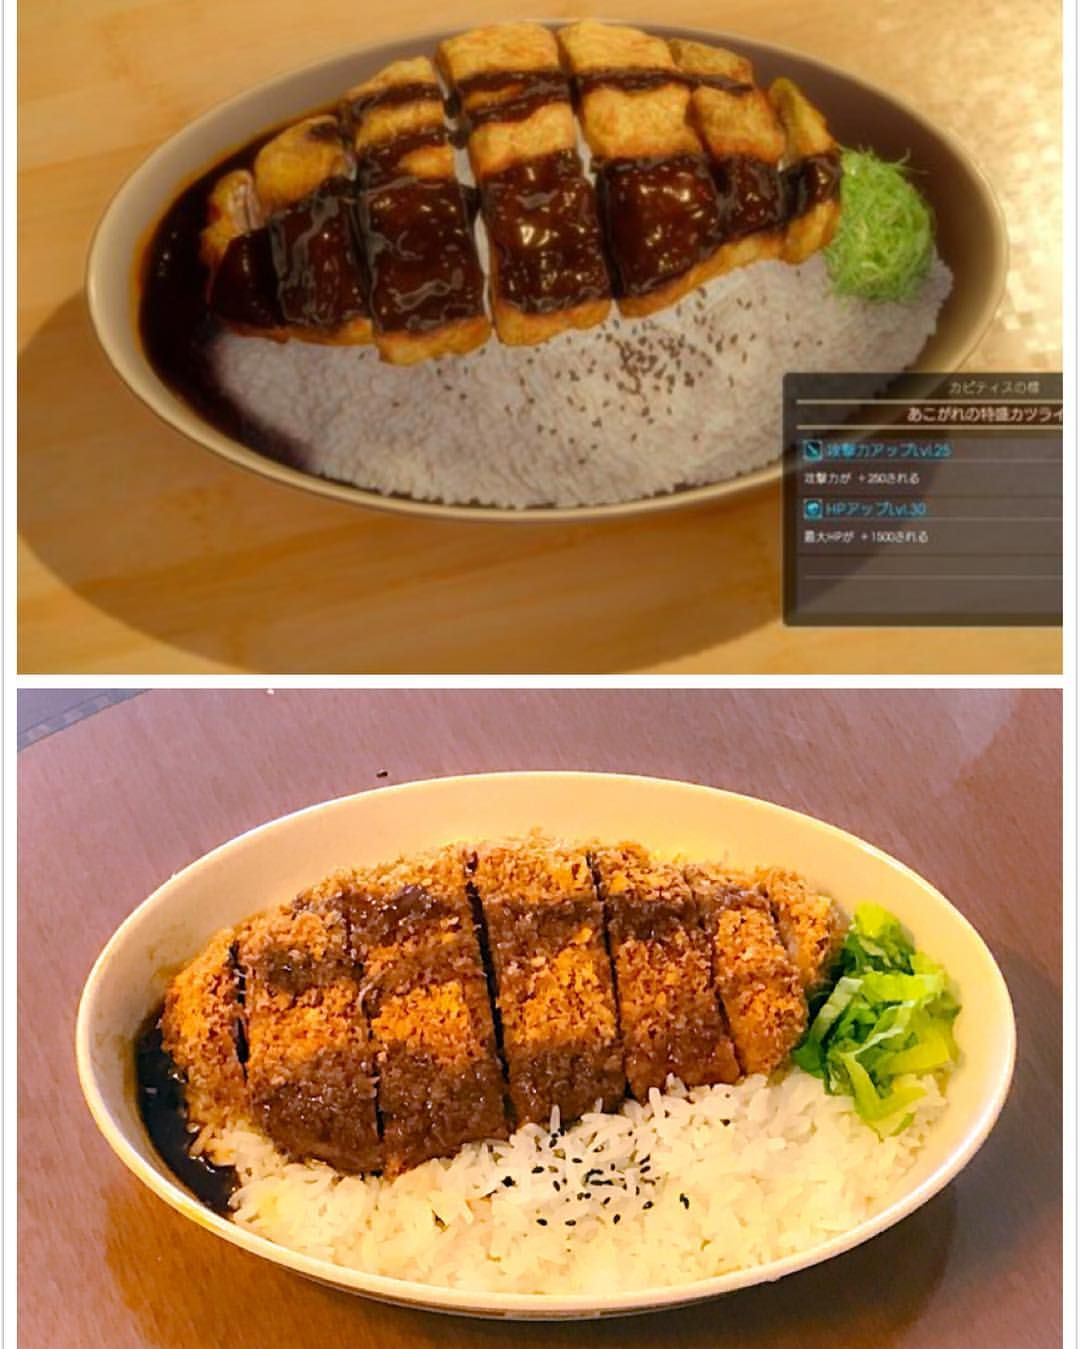 Ffxv cooking recipe hearty cutlet on rice from honey toast ffxv cooking recipe hearty cutlet on rice from honey toast tumblr forumfinder Image collections